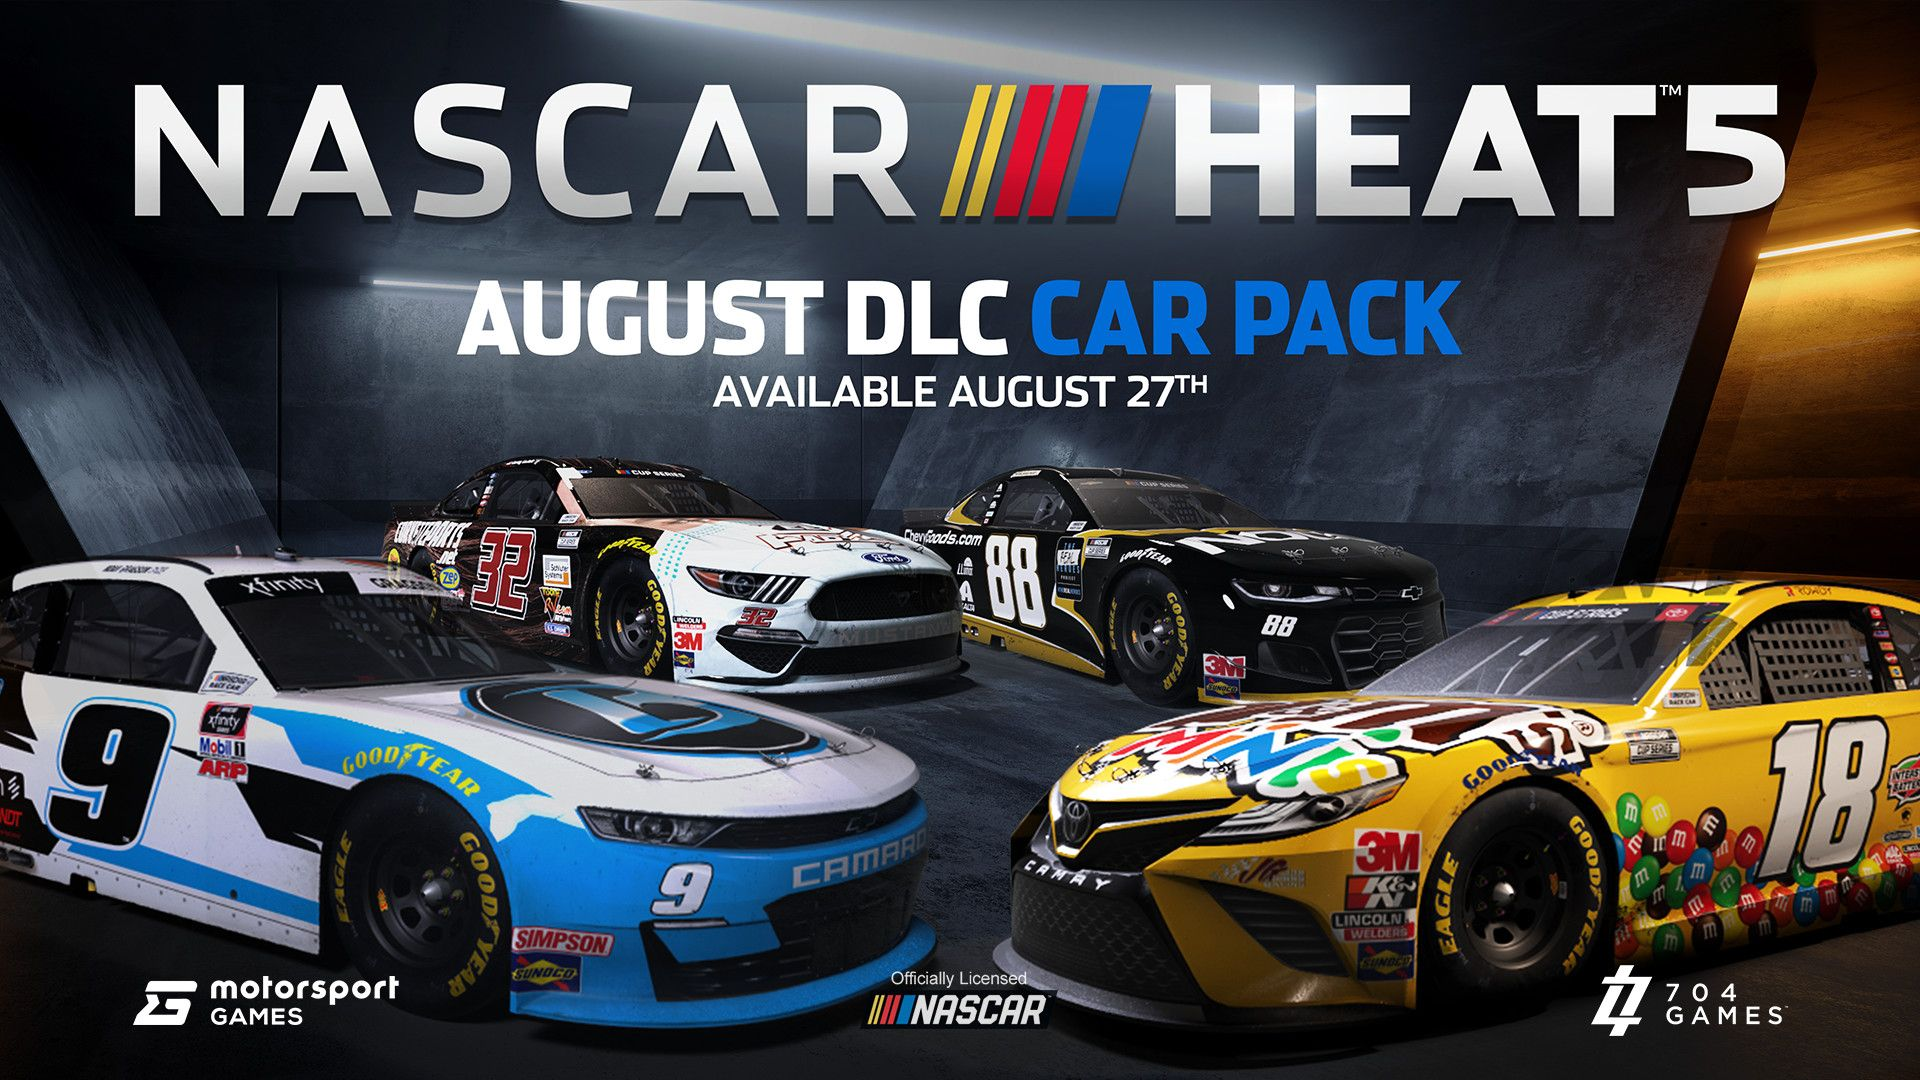 NASCAR Heat 5 - August DLC Pack